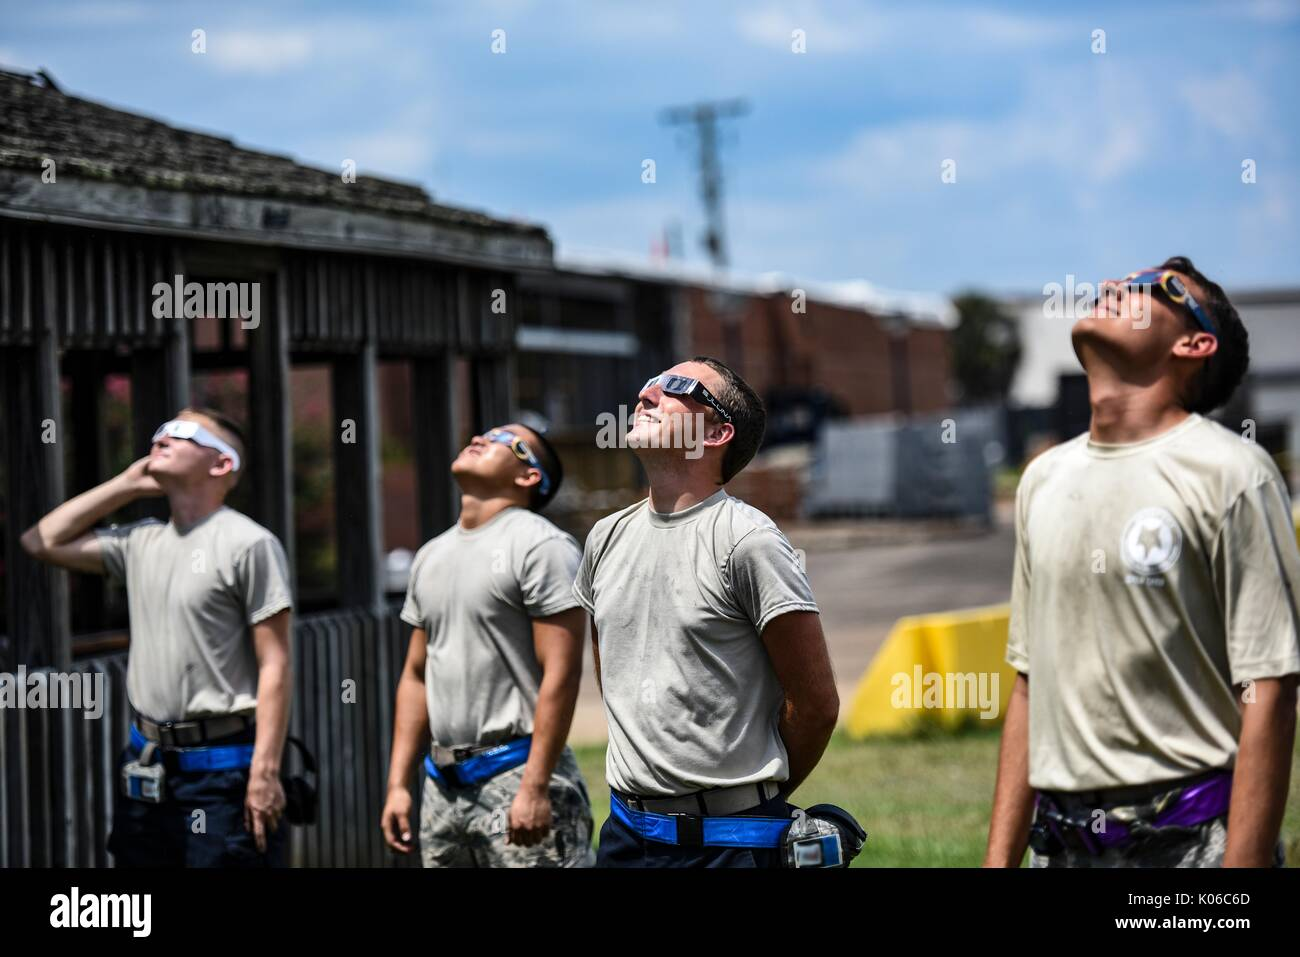 Richland United States Of America 21st Aug 2017 U S Air Force Airmen